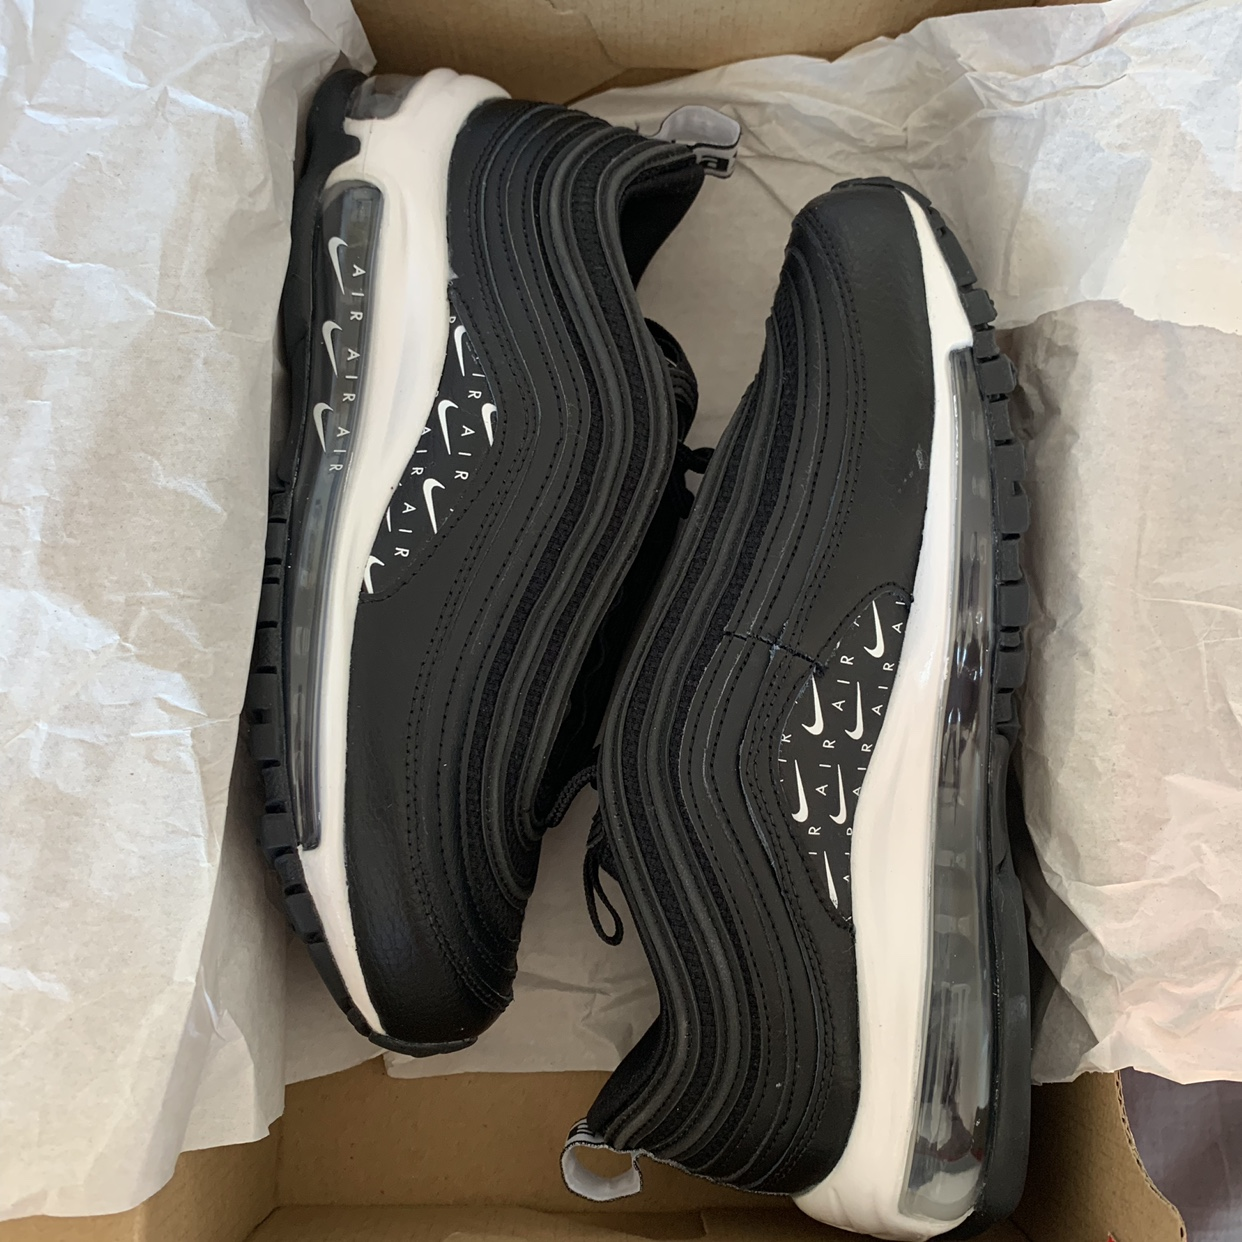 Nike Air Max 97 black white overbranded UK 4 EU Depop